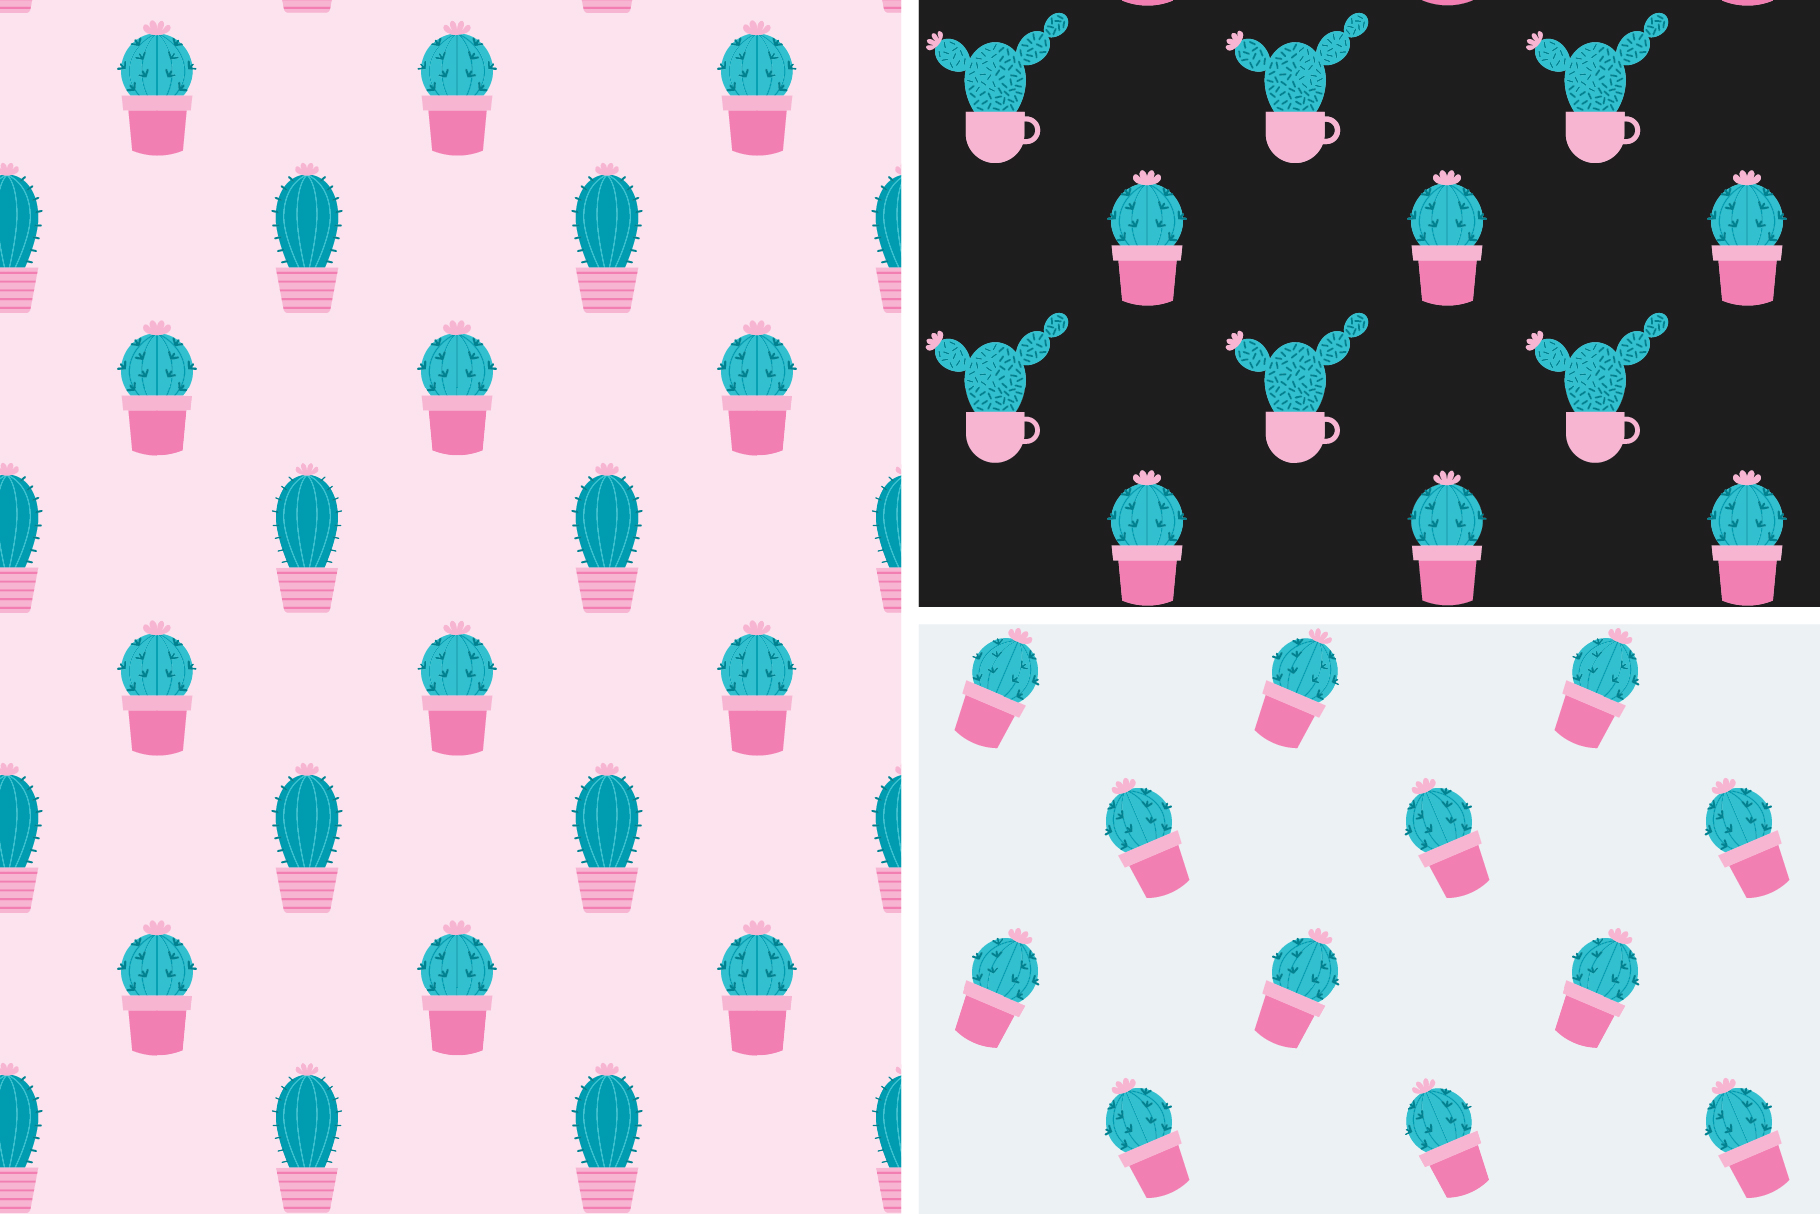 Cactus Seamless Patterns Collection example image 6